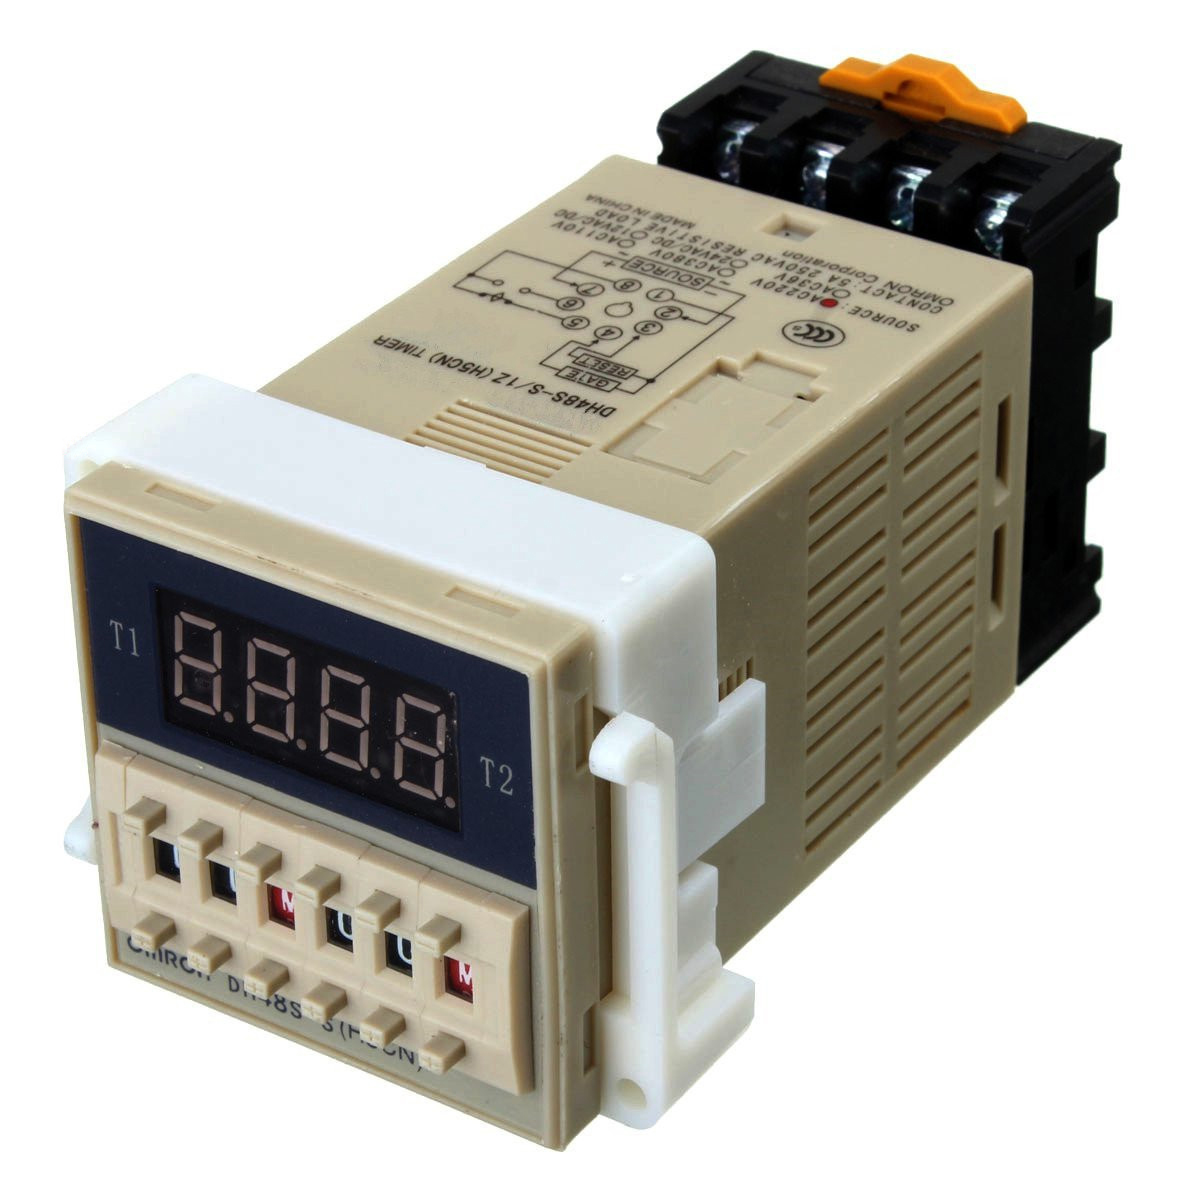 THGS AC 220V 5A Programmable Double Time Timer Delay Relay Device Tool DH48S-S 24vdc new programmable dh48s 2z time delay relay counter